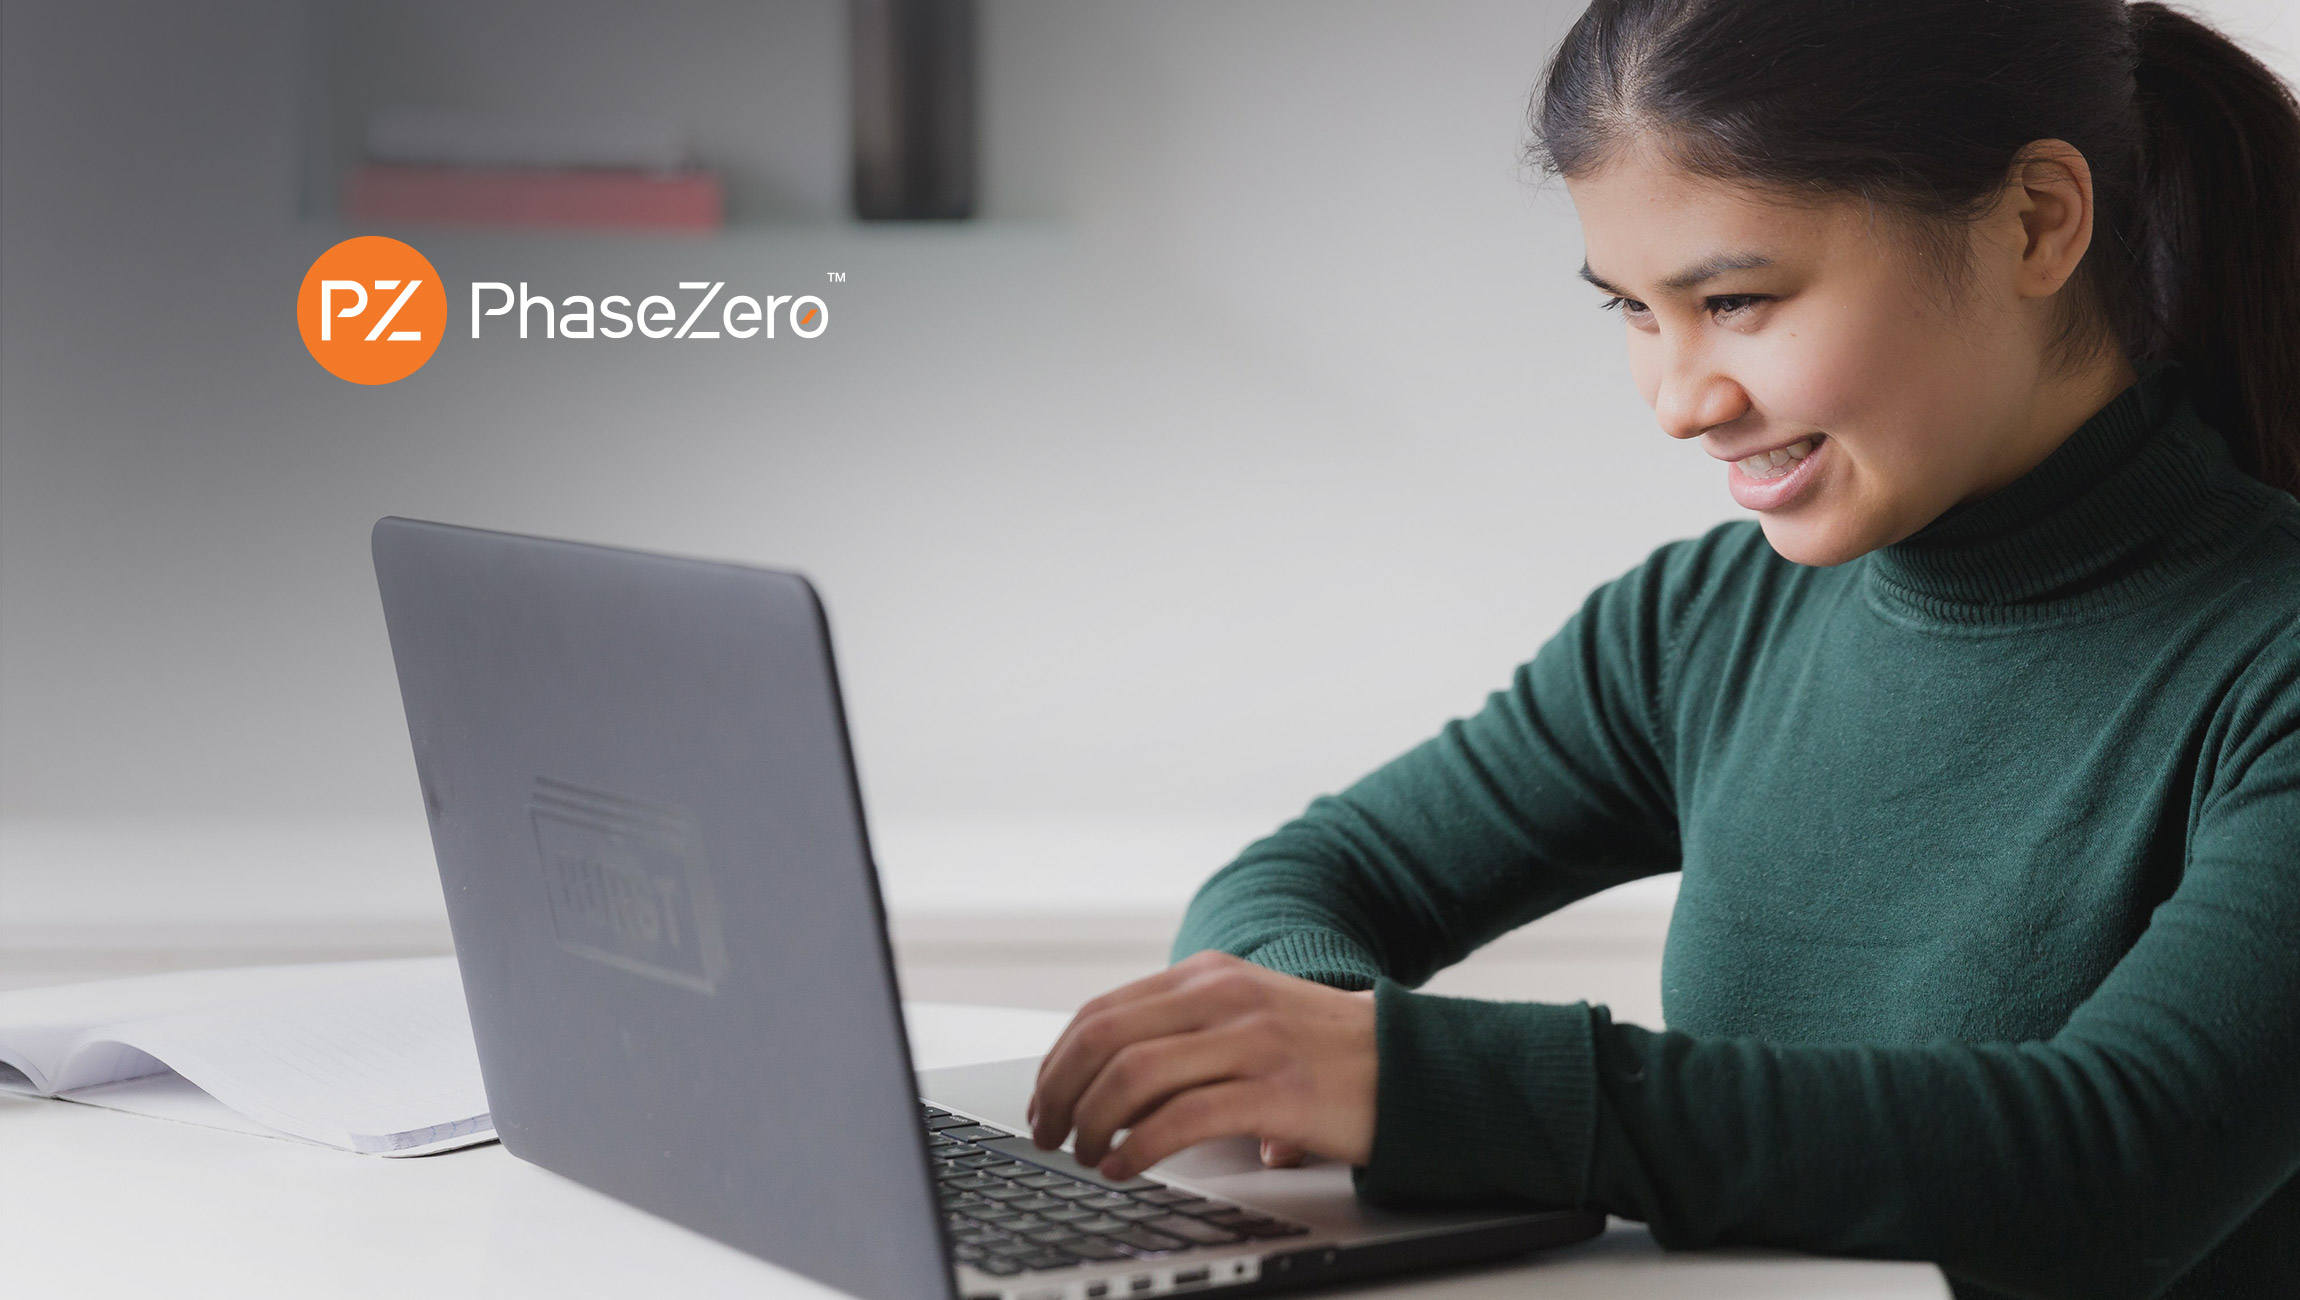 PhaseZero Announces CxCommerce™, a Global B2B and B2C E-Commerce Cloud Platform that Accelerates Digital Transformation for Industrial and Automotive Companies